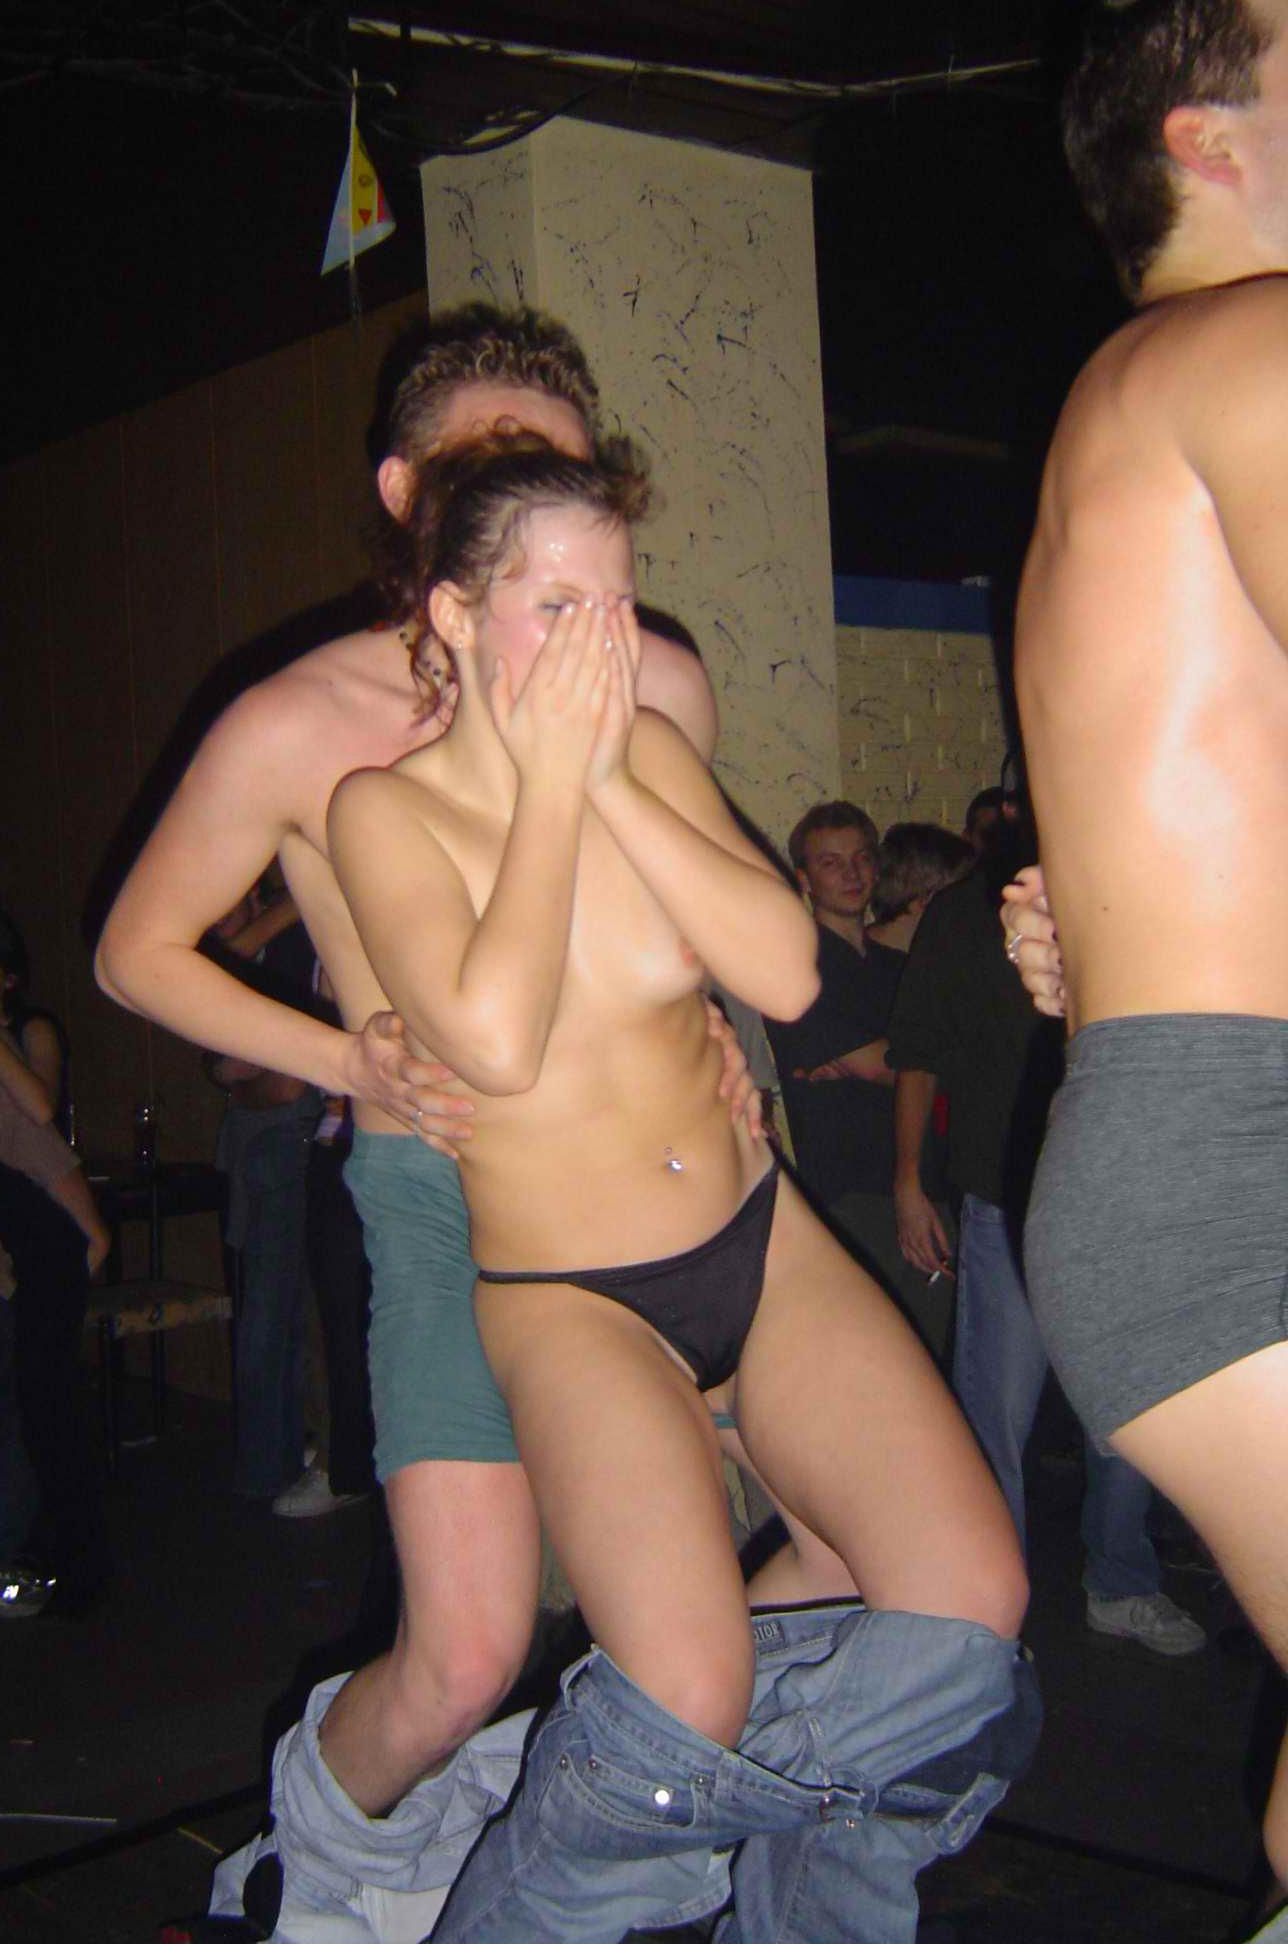 Possible only amateur girl naked at party are